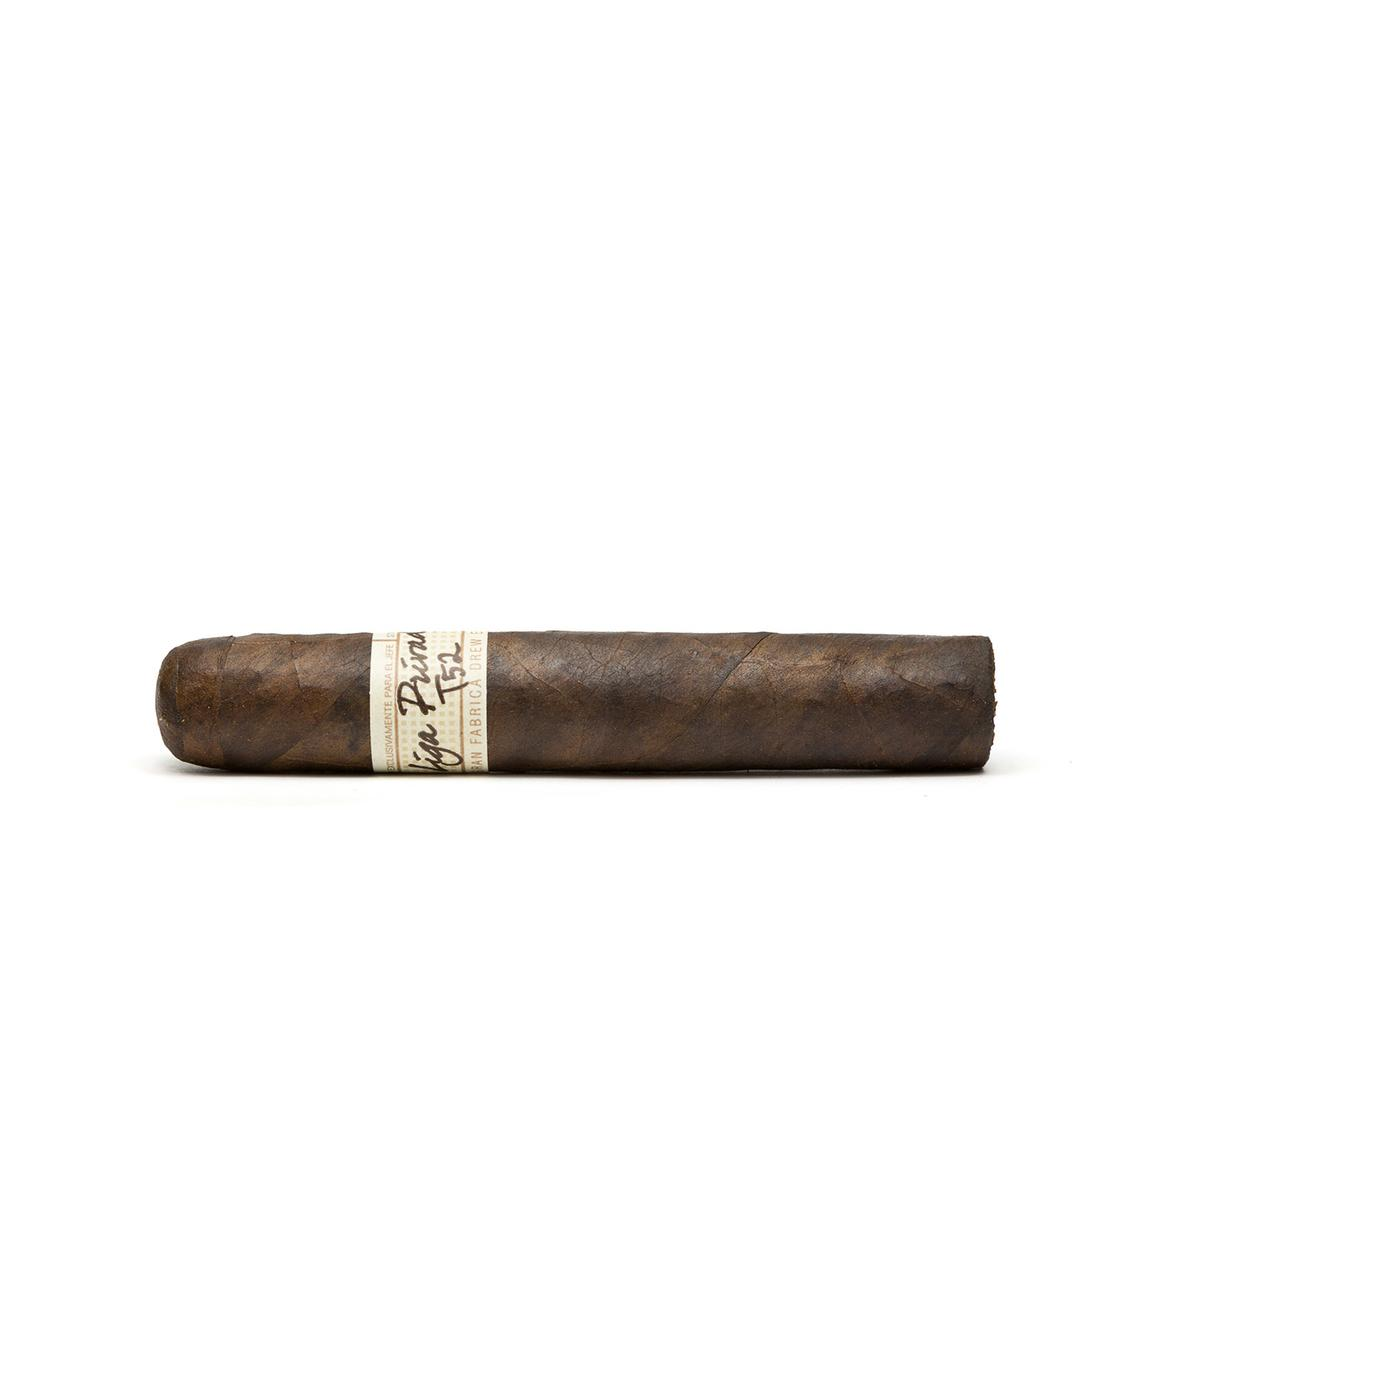 Liga Privada T52 Stalk-Cut Robusto